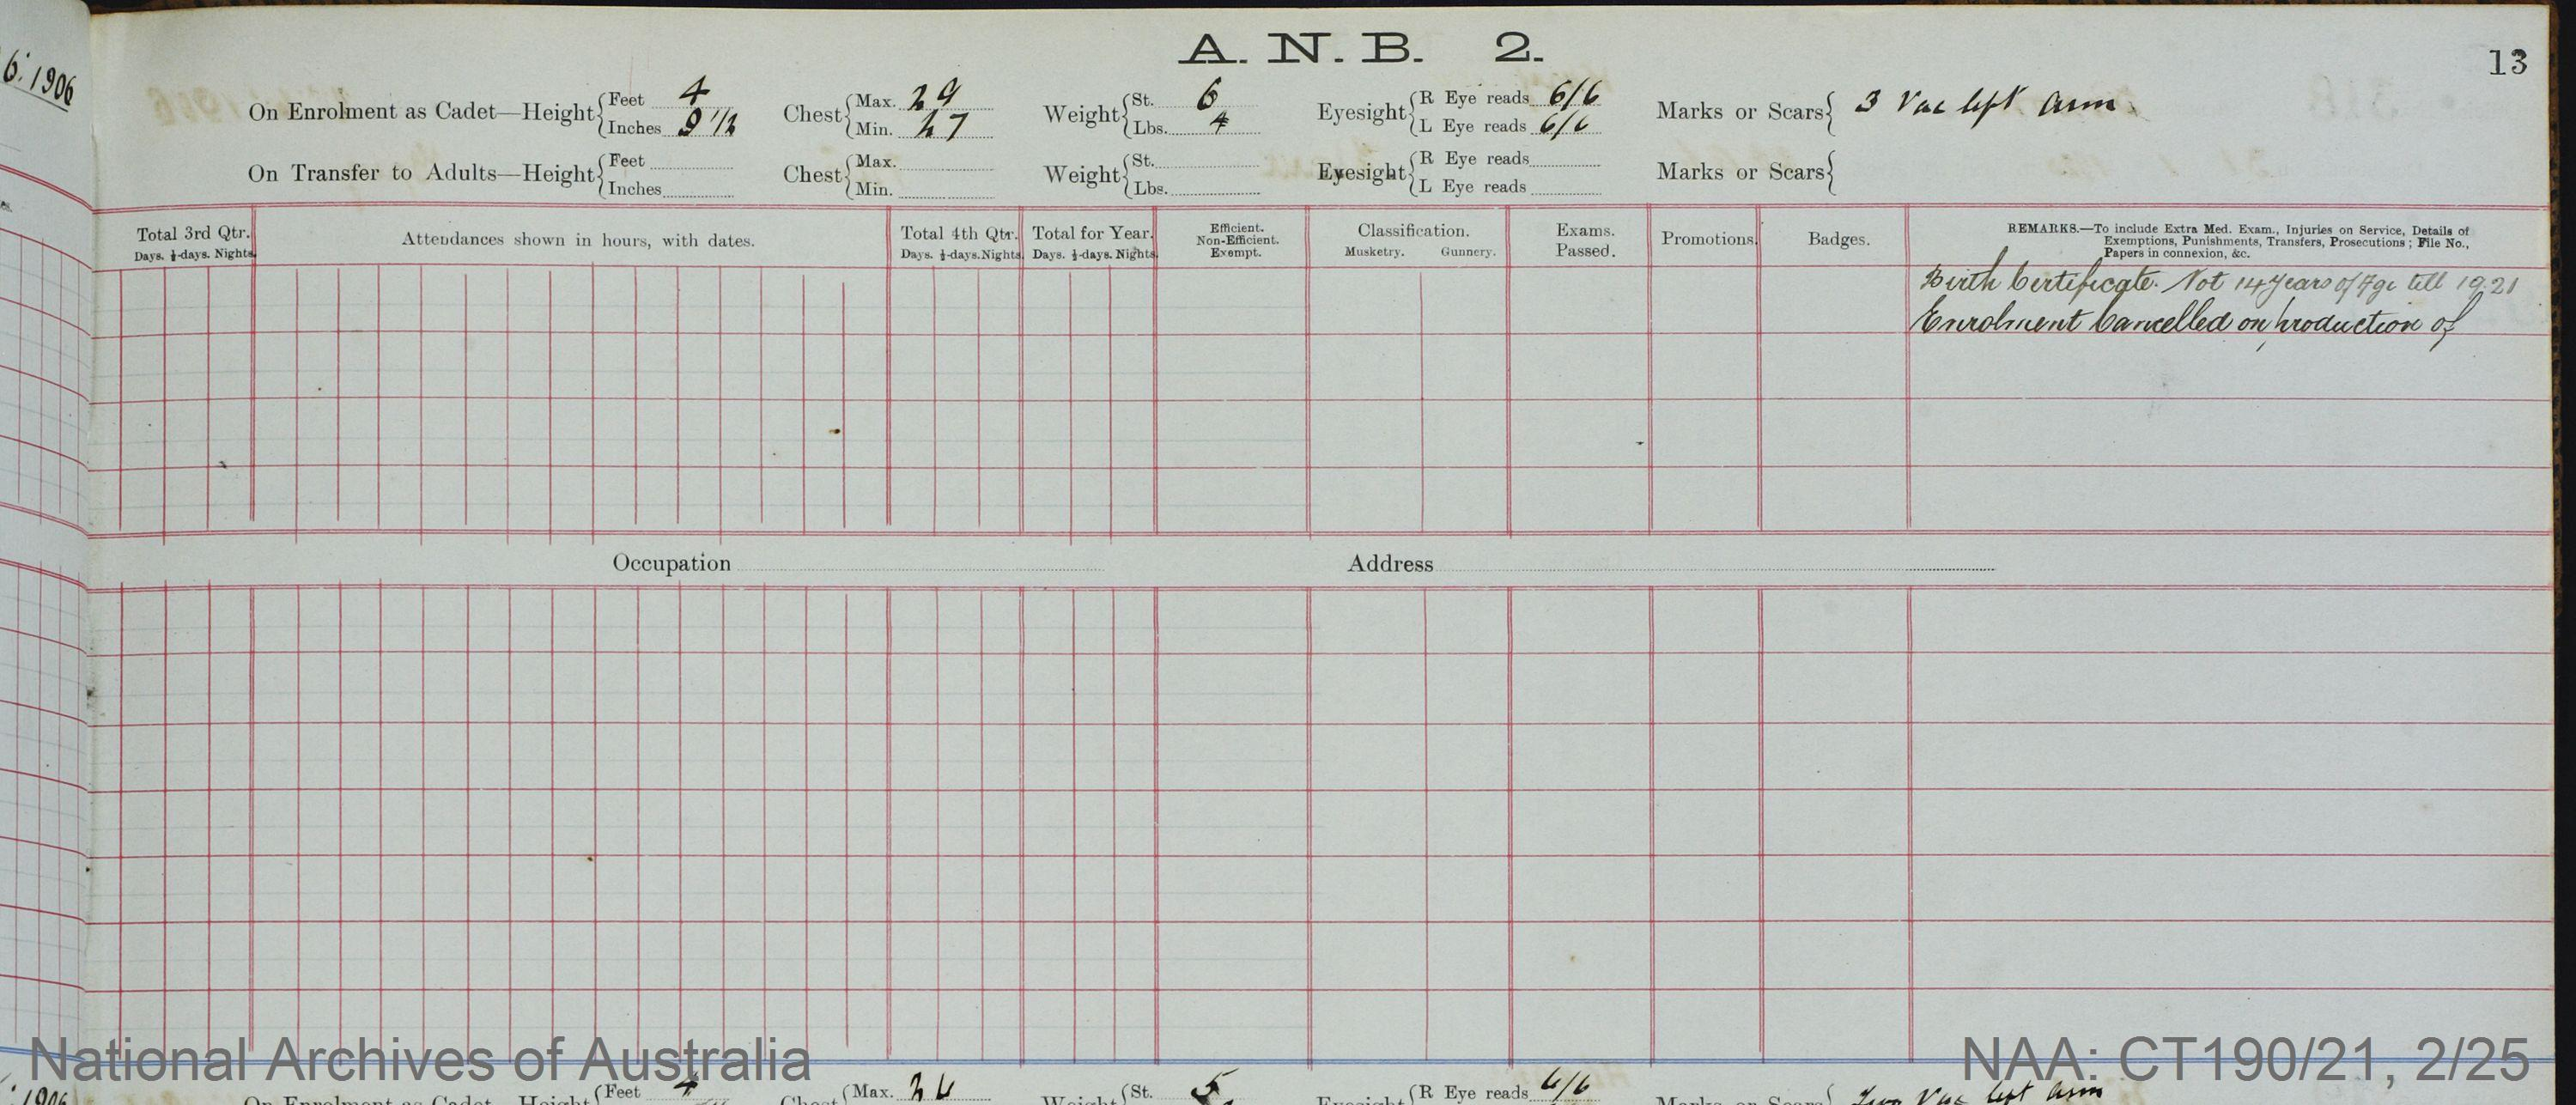 SURNAME - BROWN;  GIVEN NAME(S) - Stanley;  OFFICIAL NUMBER - 315;  DATE OF BIRTH - 28 June 1906;  PLACE OF BIRTH - [Unknown];  NEXT OF KIN - [Unknown] ;  SERVICE/STATION - Port Fairy;  REGISTRATION DATE - 28 January 1920